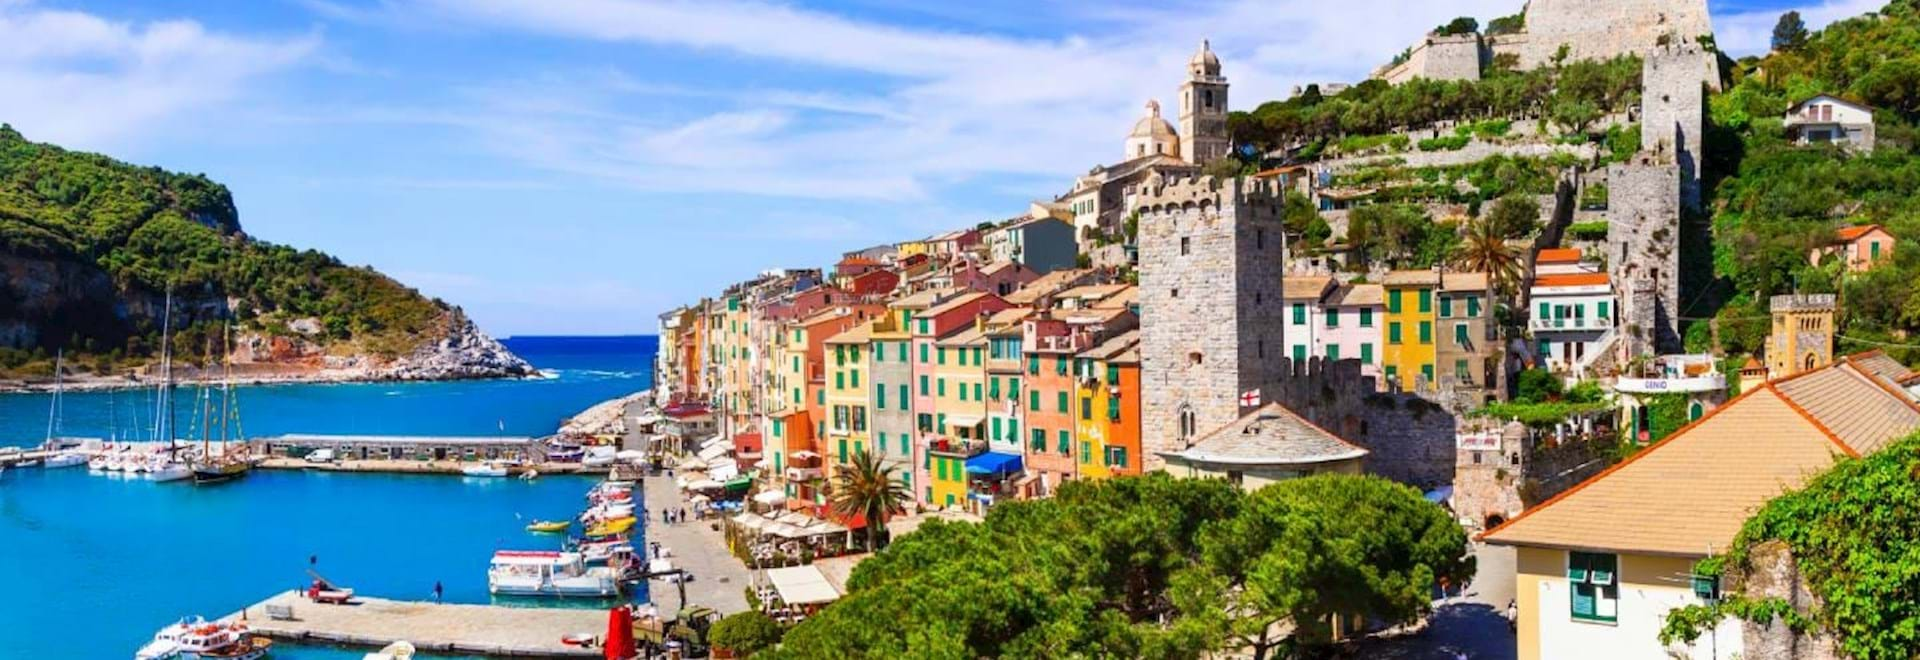 Beautiful view of Portovenere in Italy on a sunny summer day